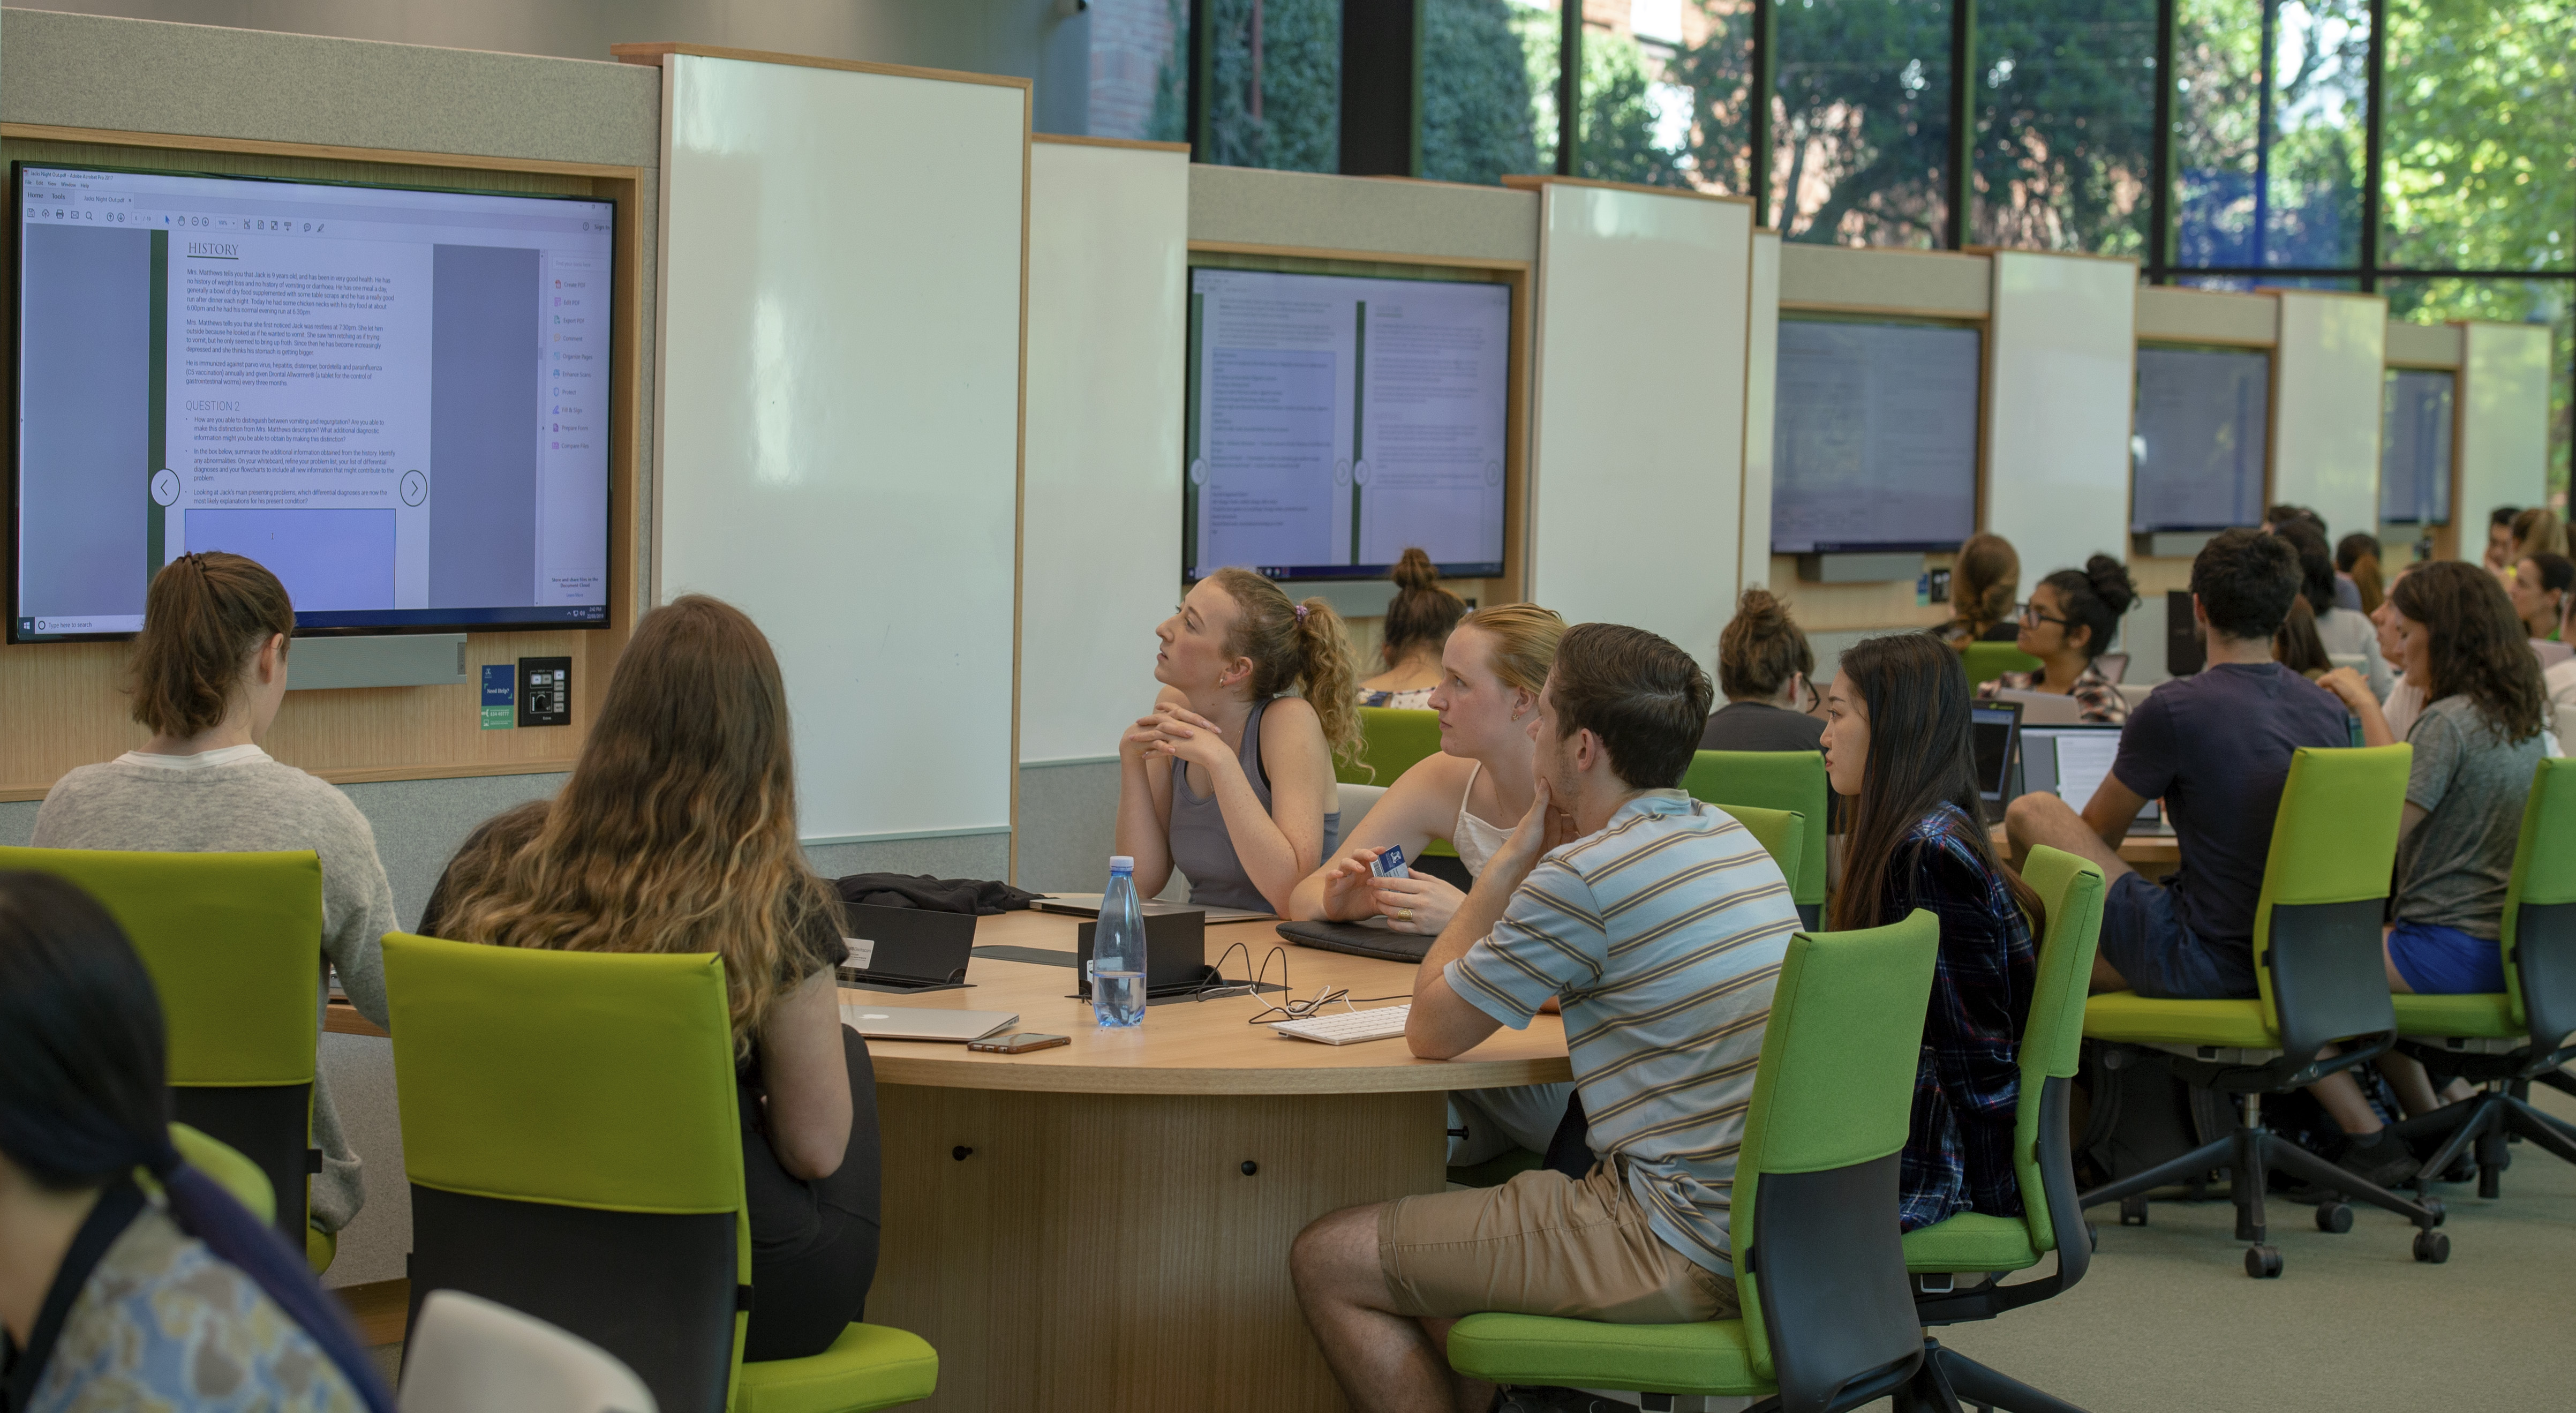 Student sit around a table examining a computer screen in groups with a arrangement that is similar to dedicated pods or sections.